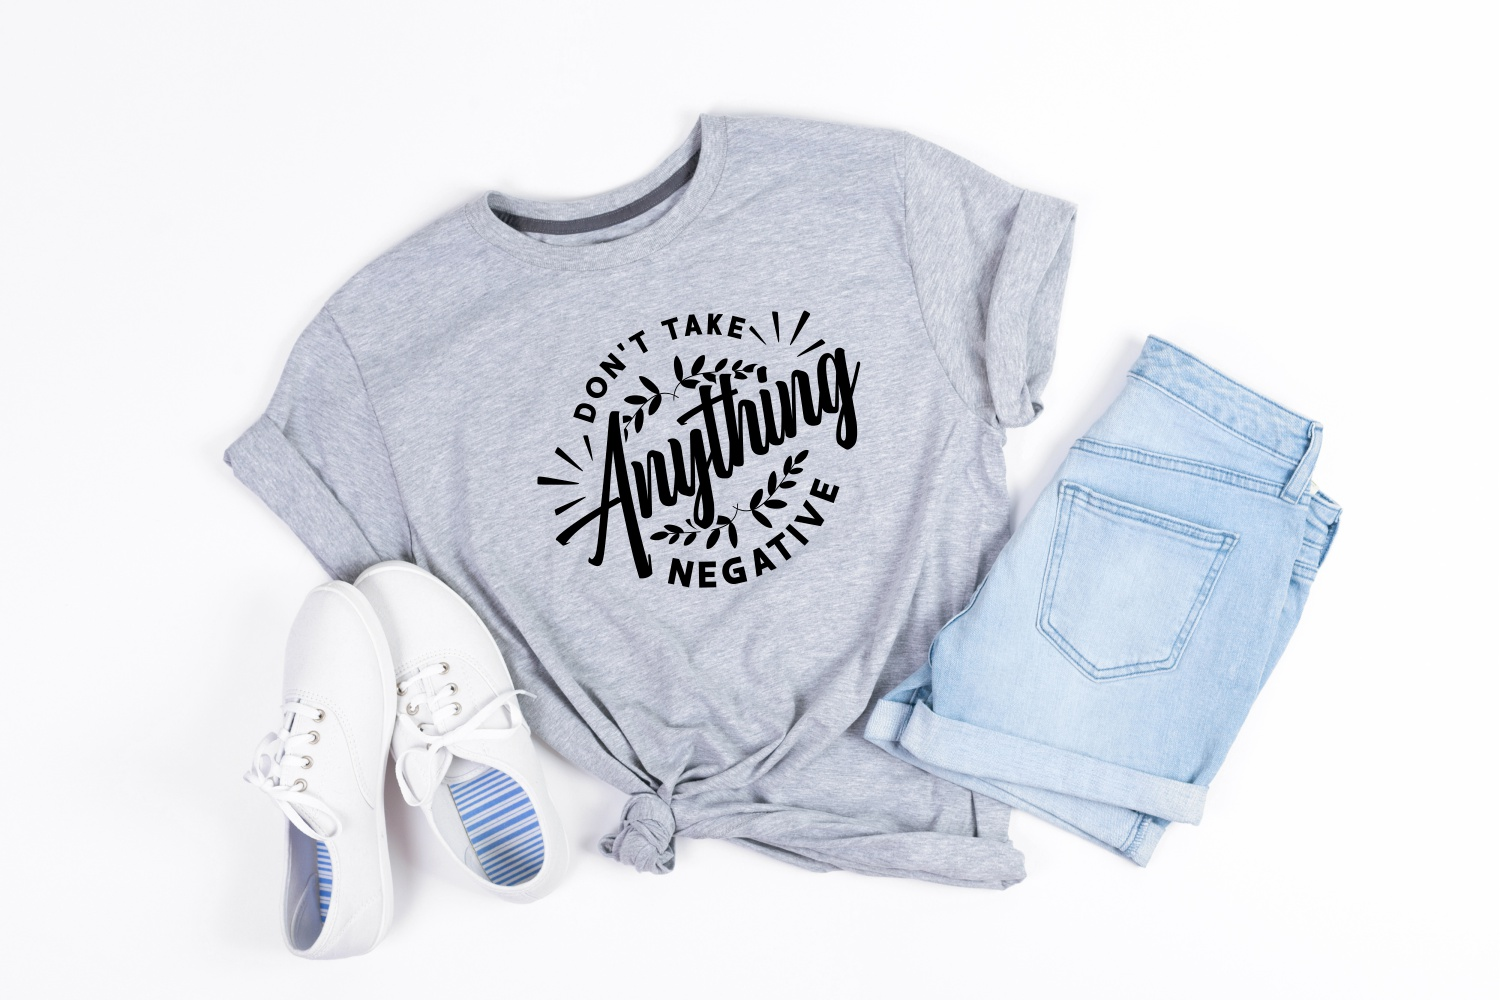 A casual set for walking: a gray T-shirt with a lettering, white sneakers and denim shorts.